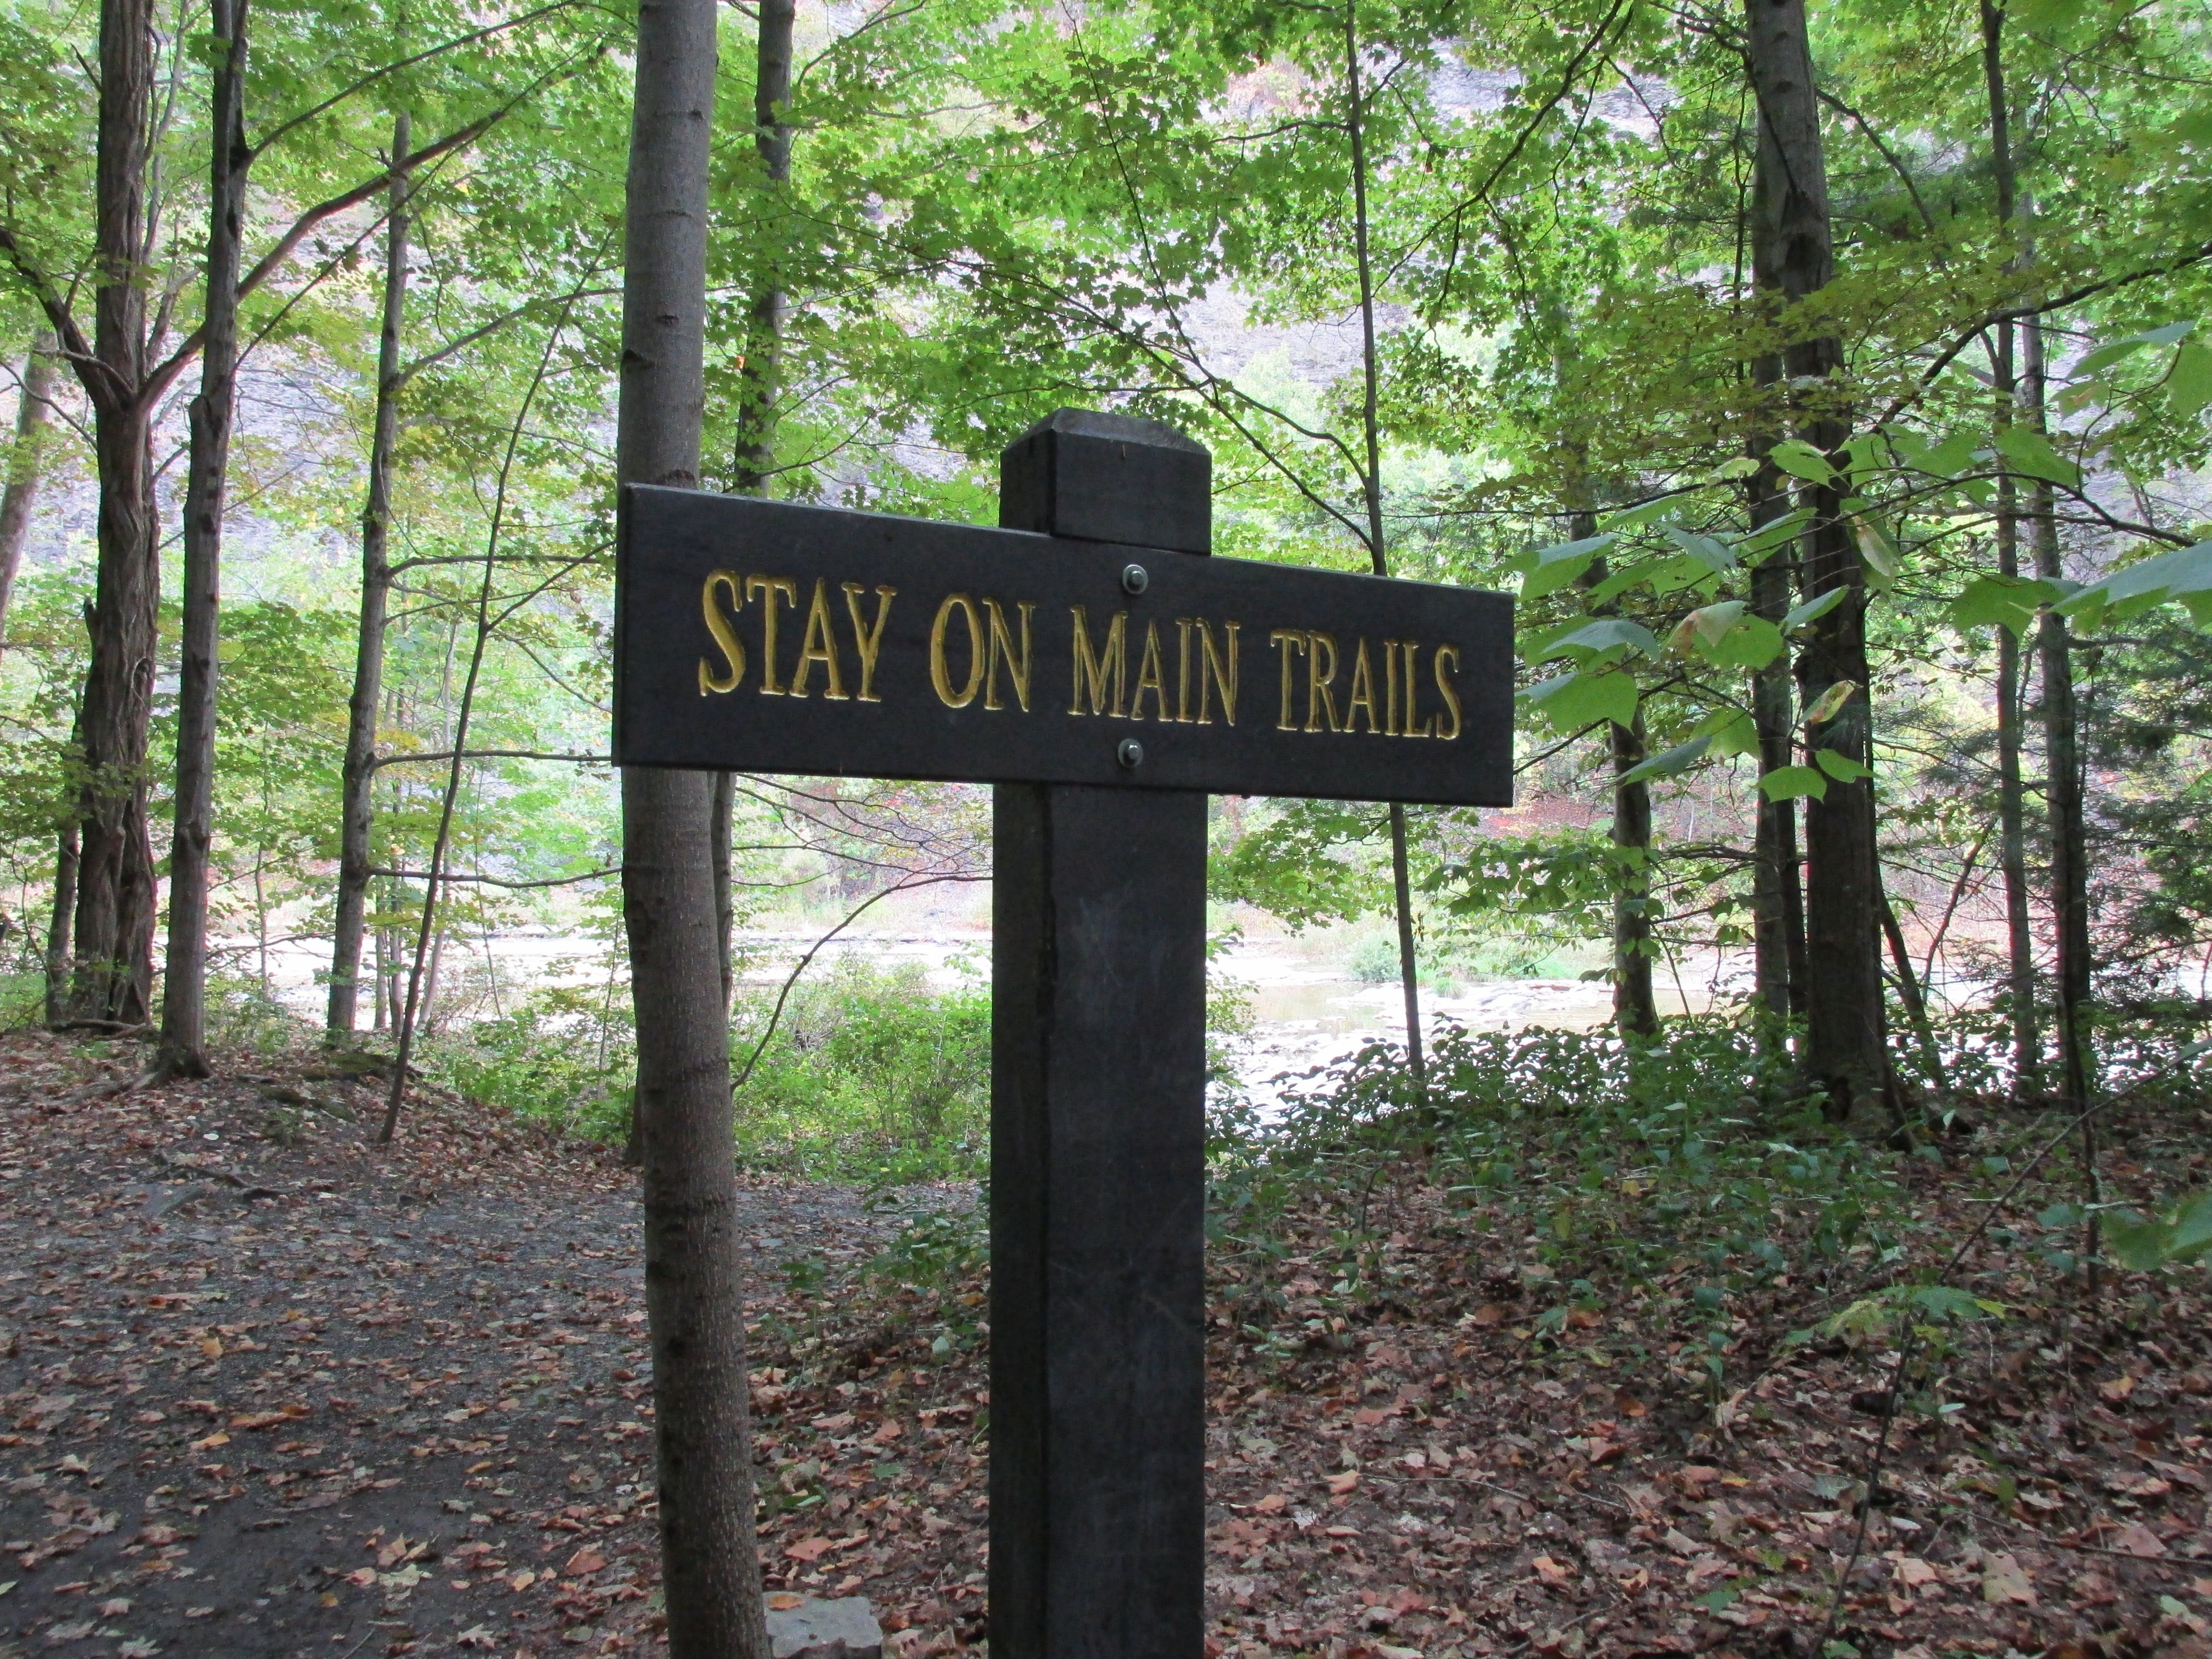 STAY ON MAIN TRAIL